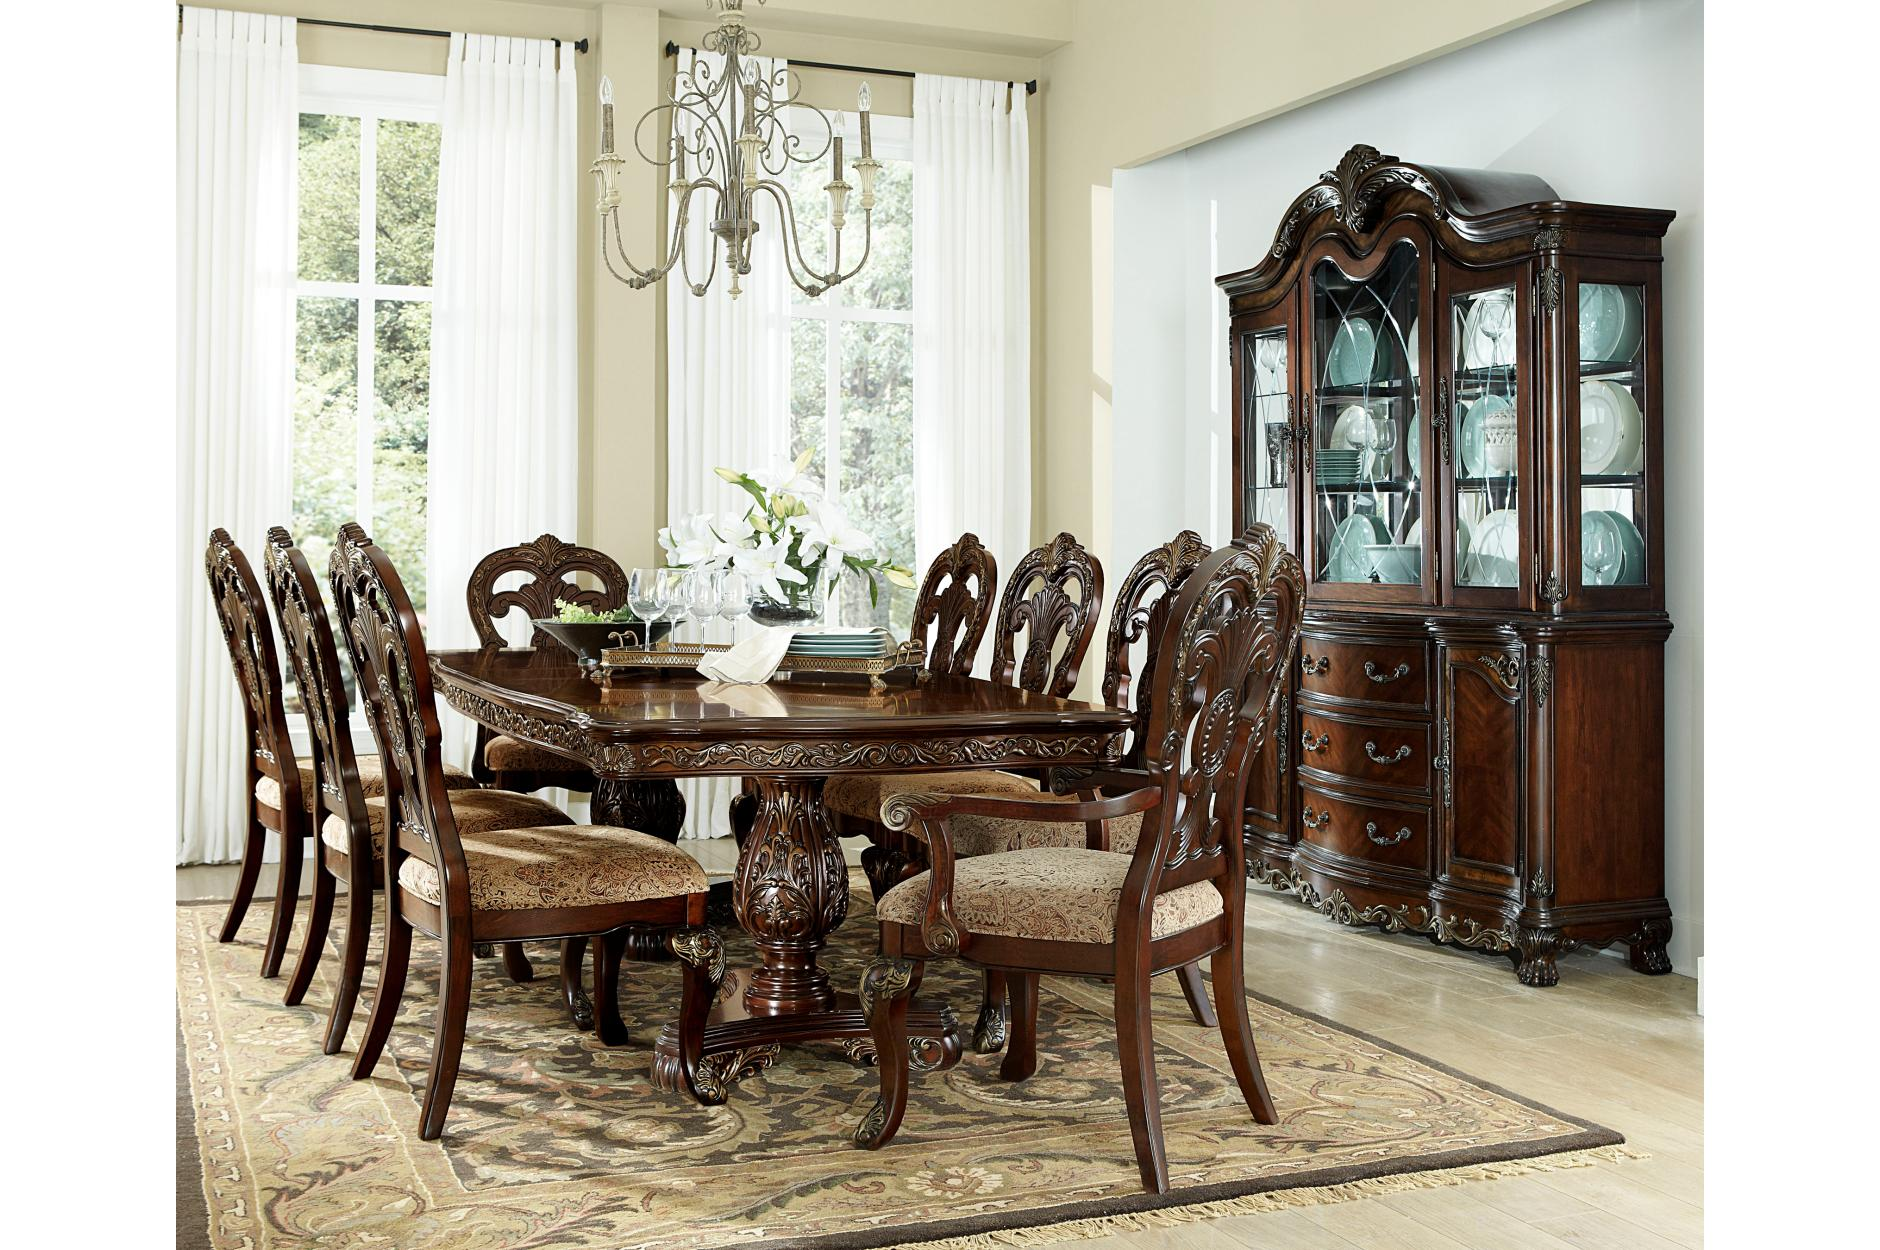 7PC Dining Set (Table - 4 Side Chairs - 2 Arm Chairs)